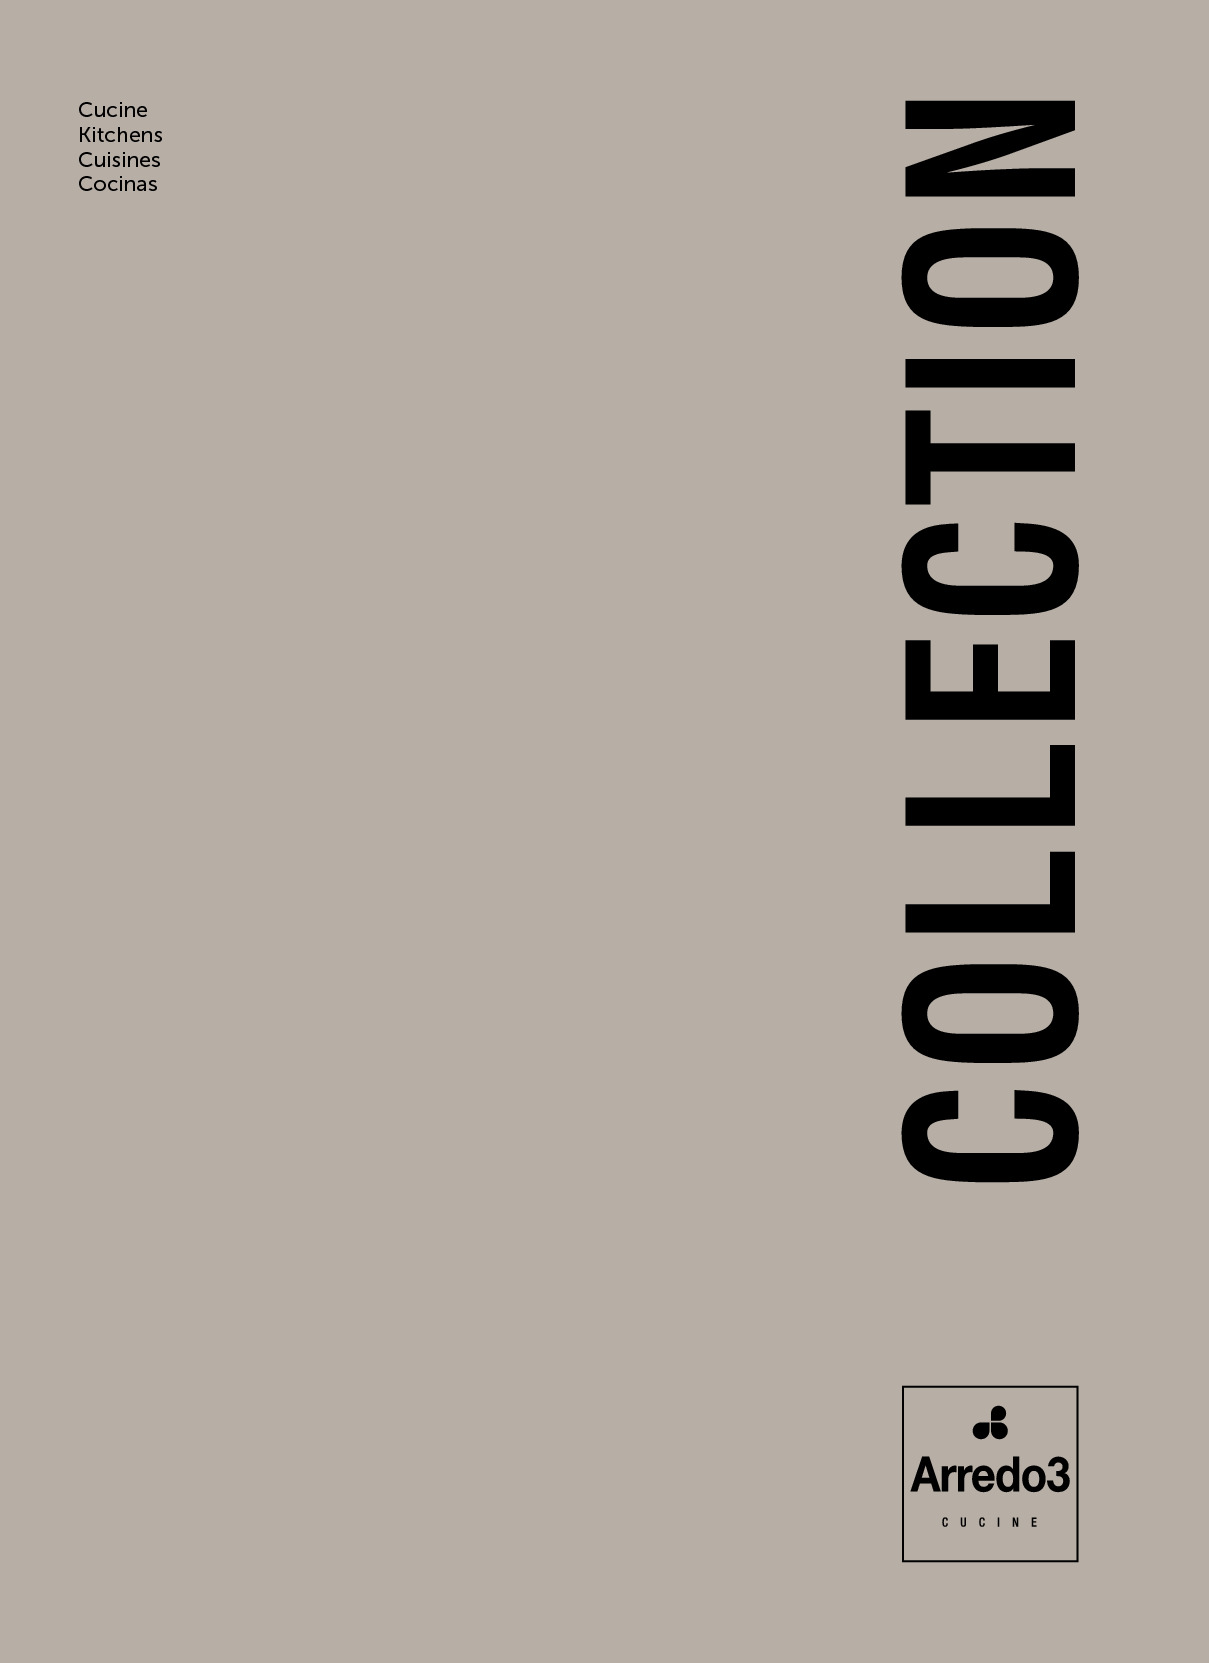 thumbnail of Collection_CUCINE (1)